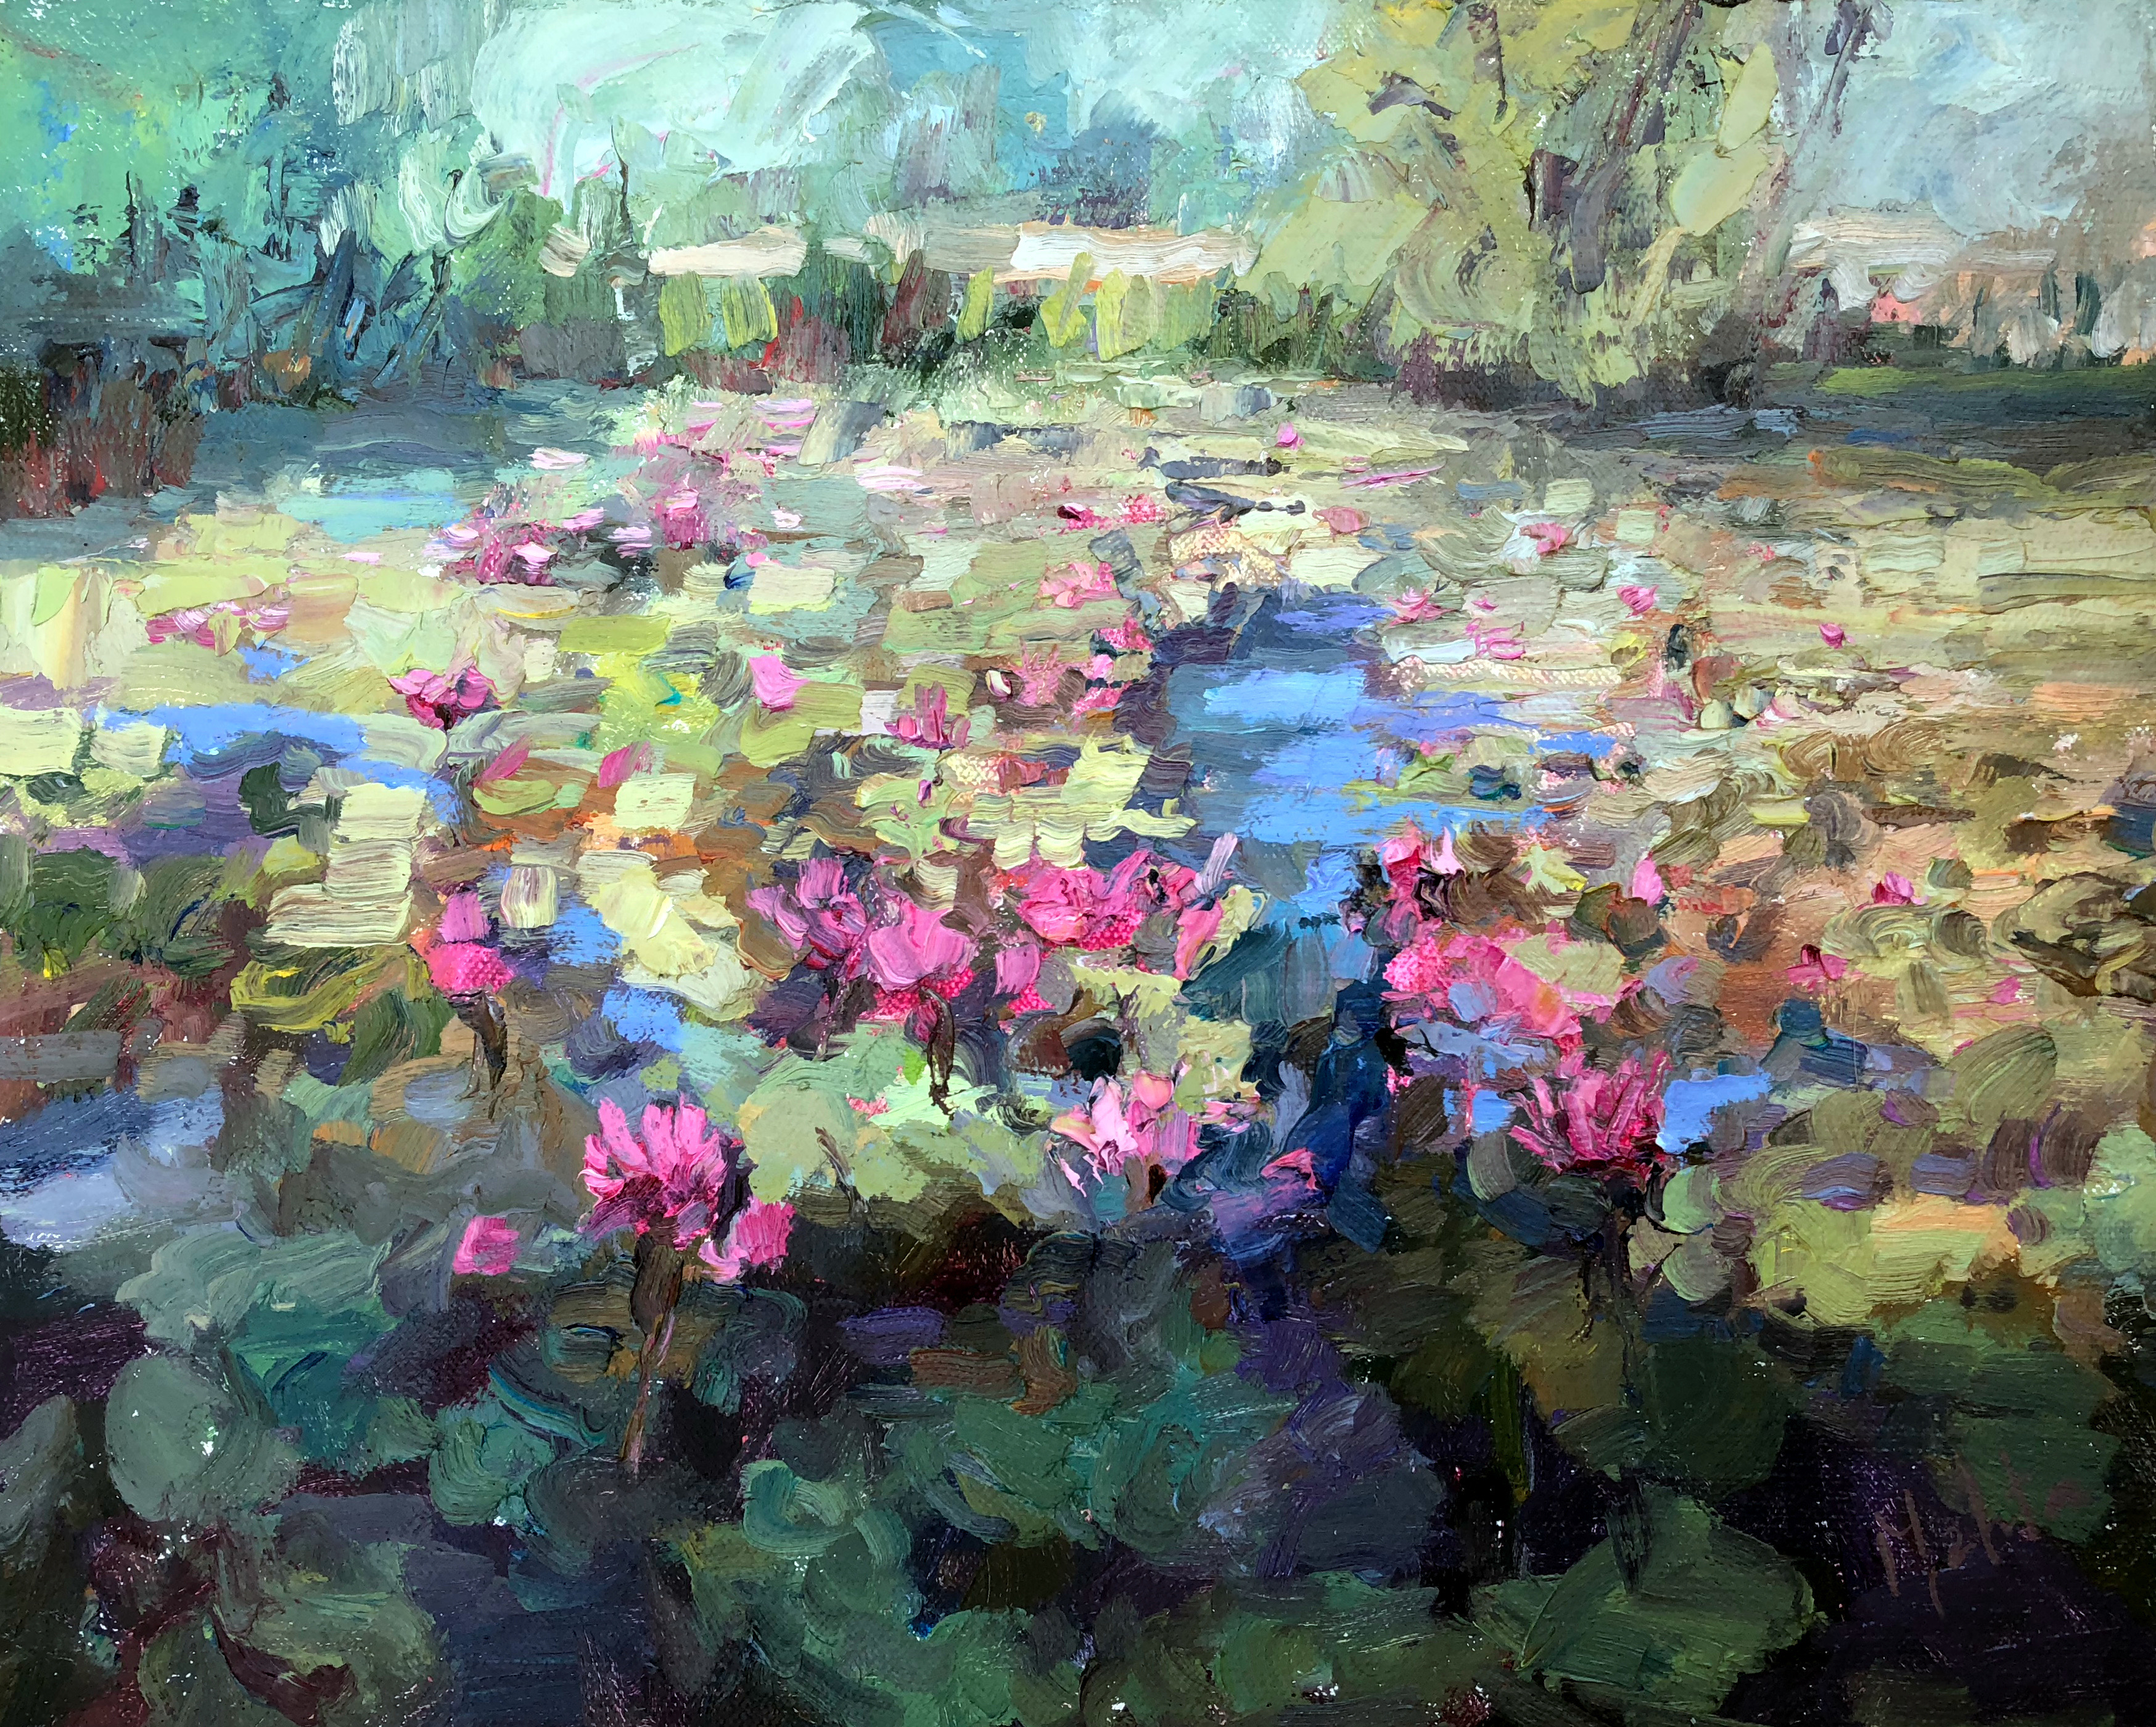 Lily Pond-Mehta, oil 9x12 $900